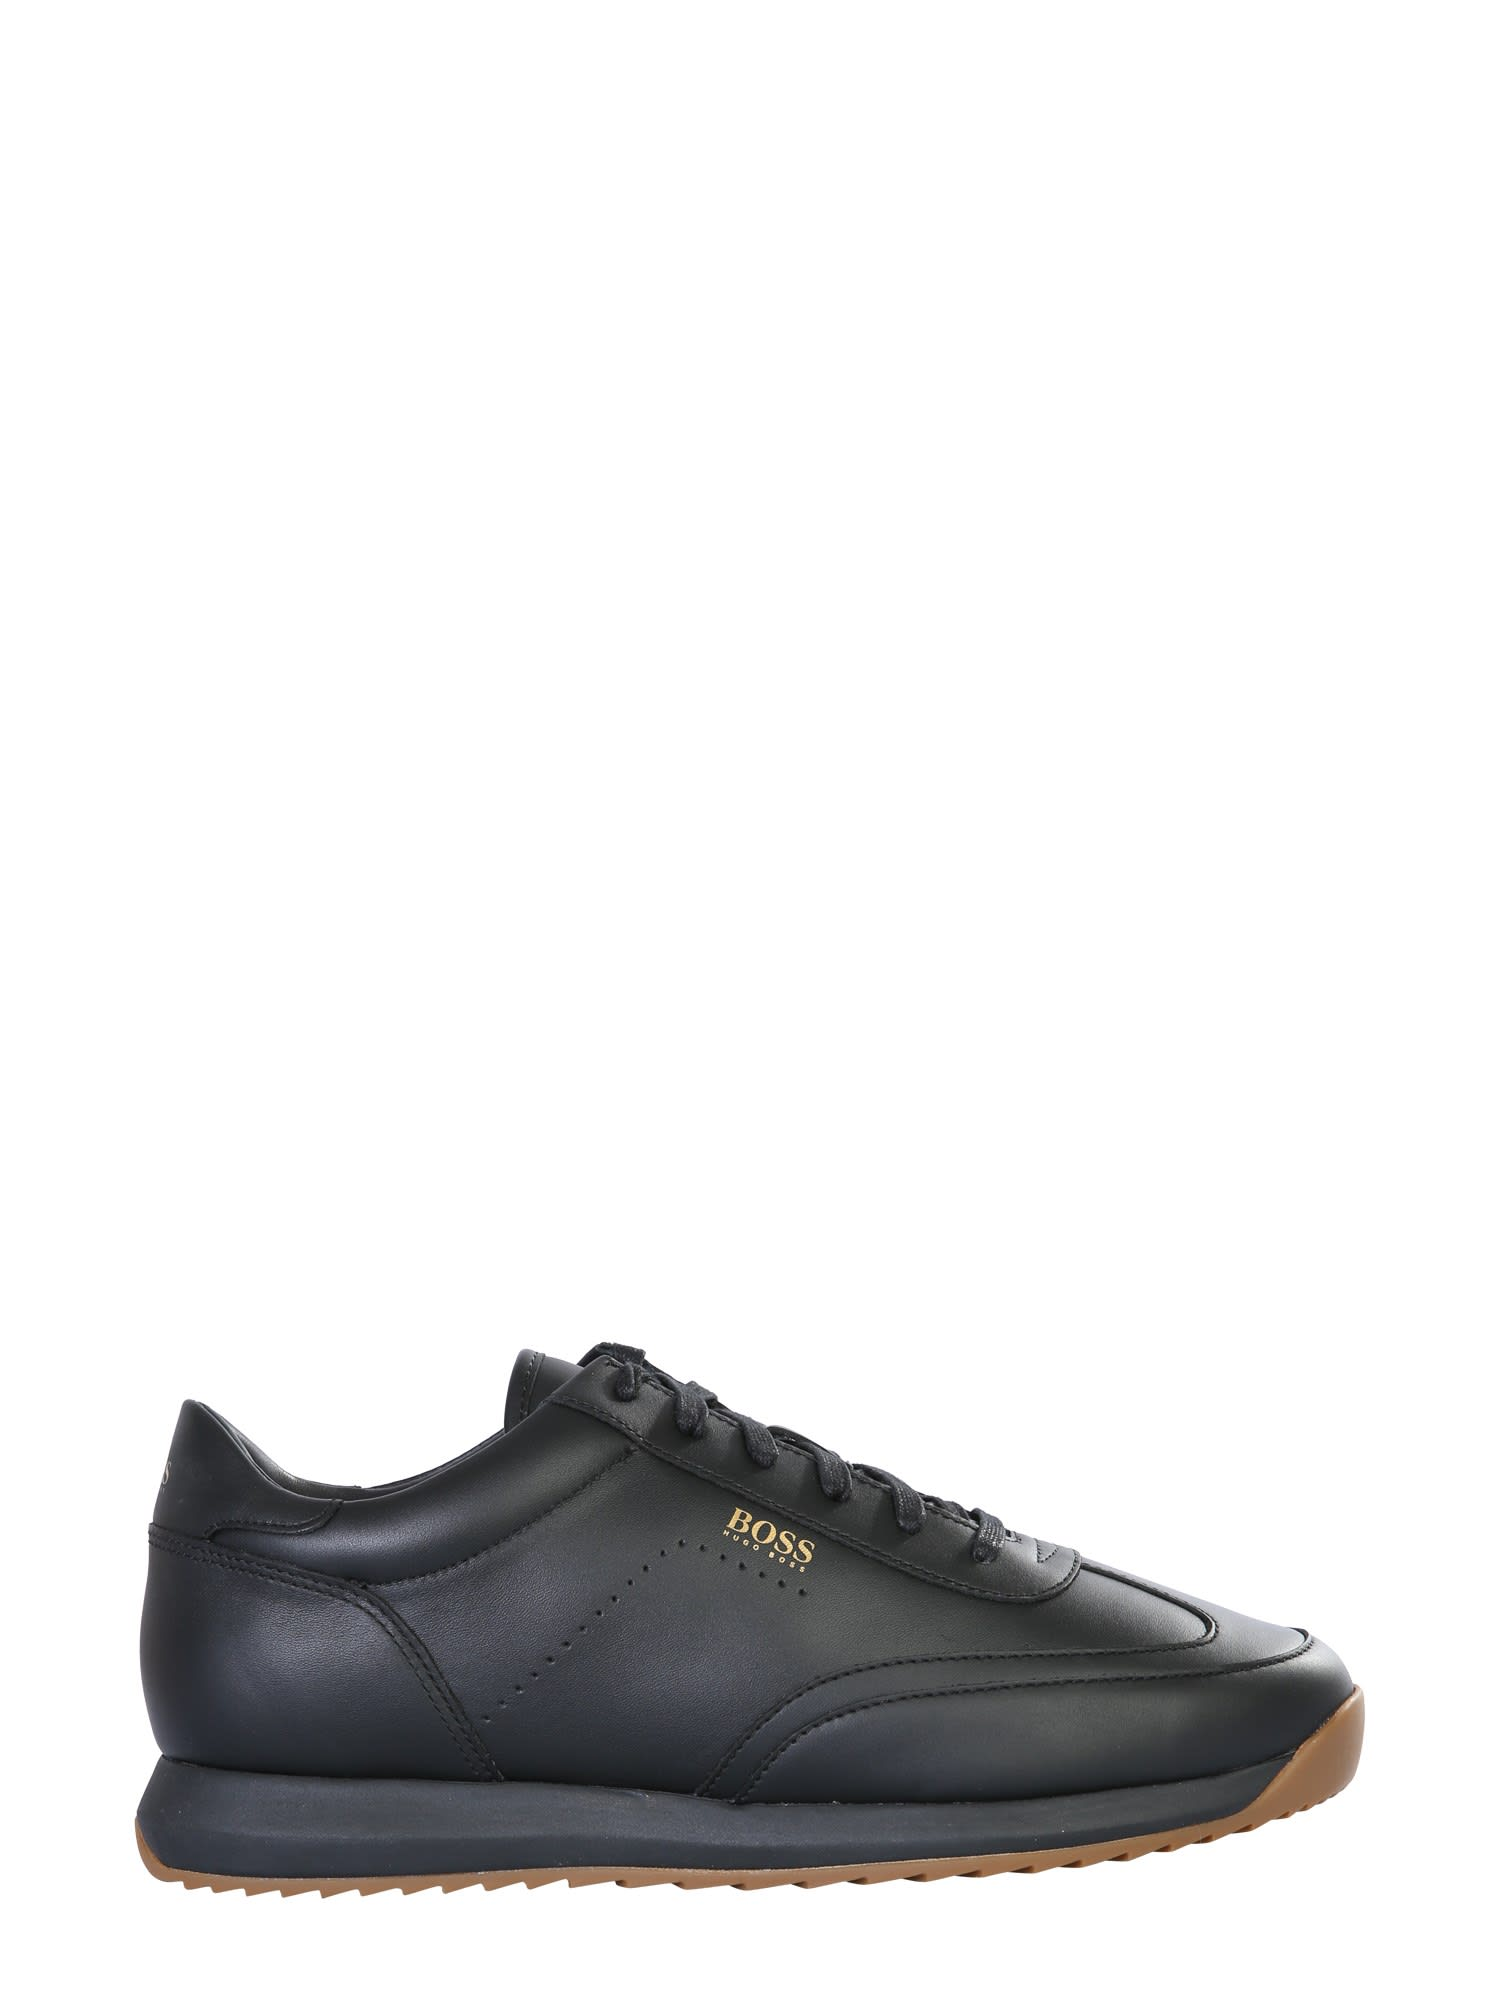 Hugo Boss Sonic Sneakers